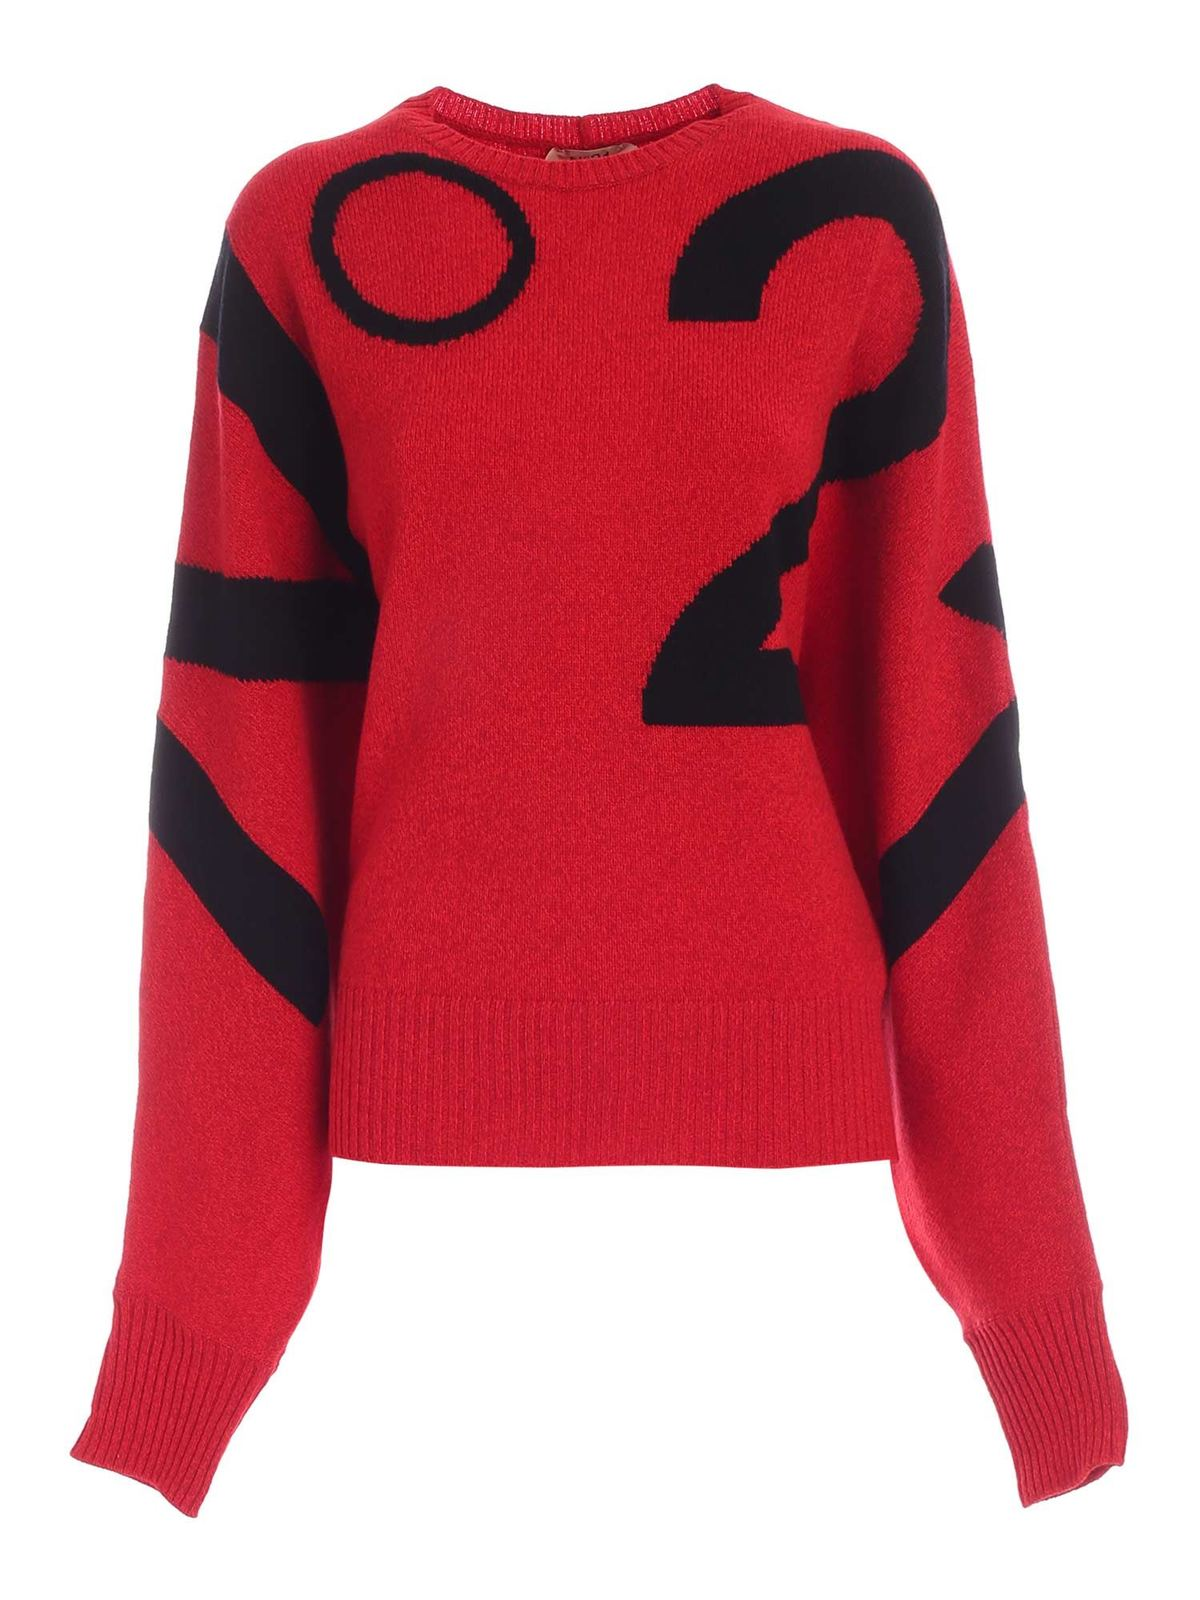 N°21 BLACK PATTERN PULLOVER IN RED